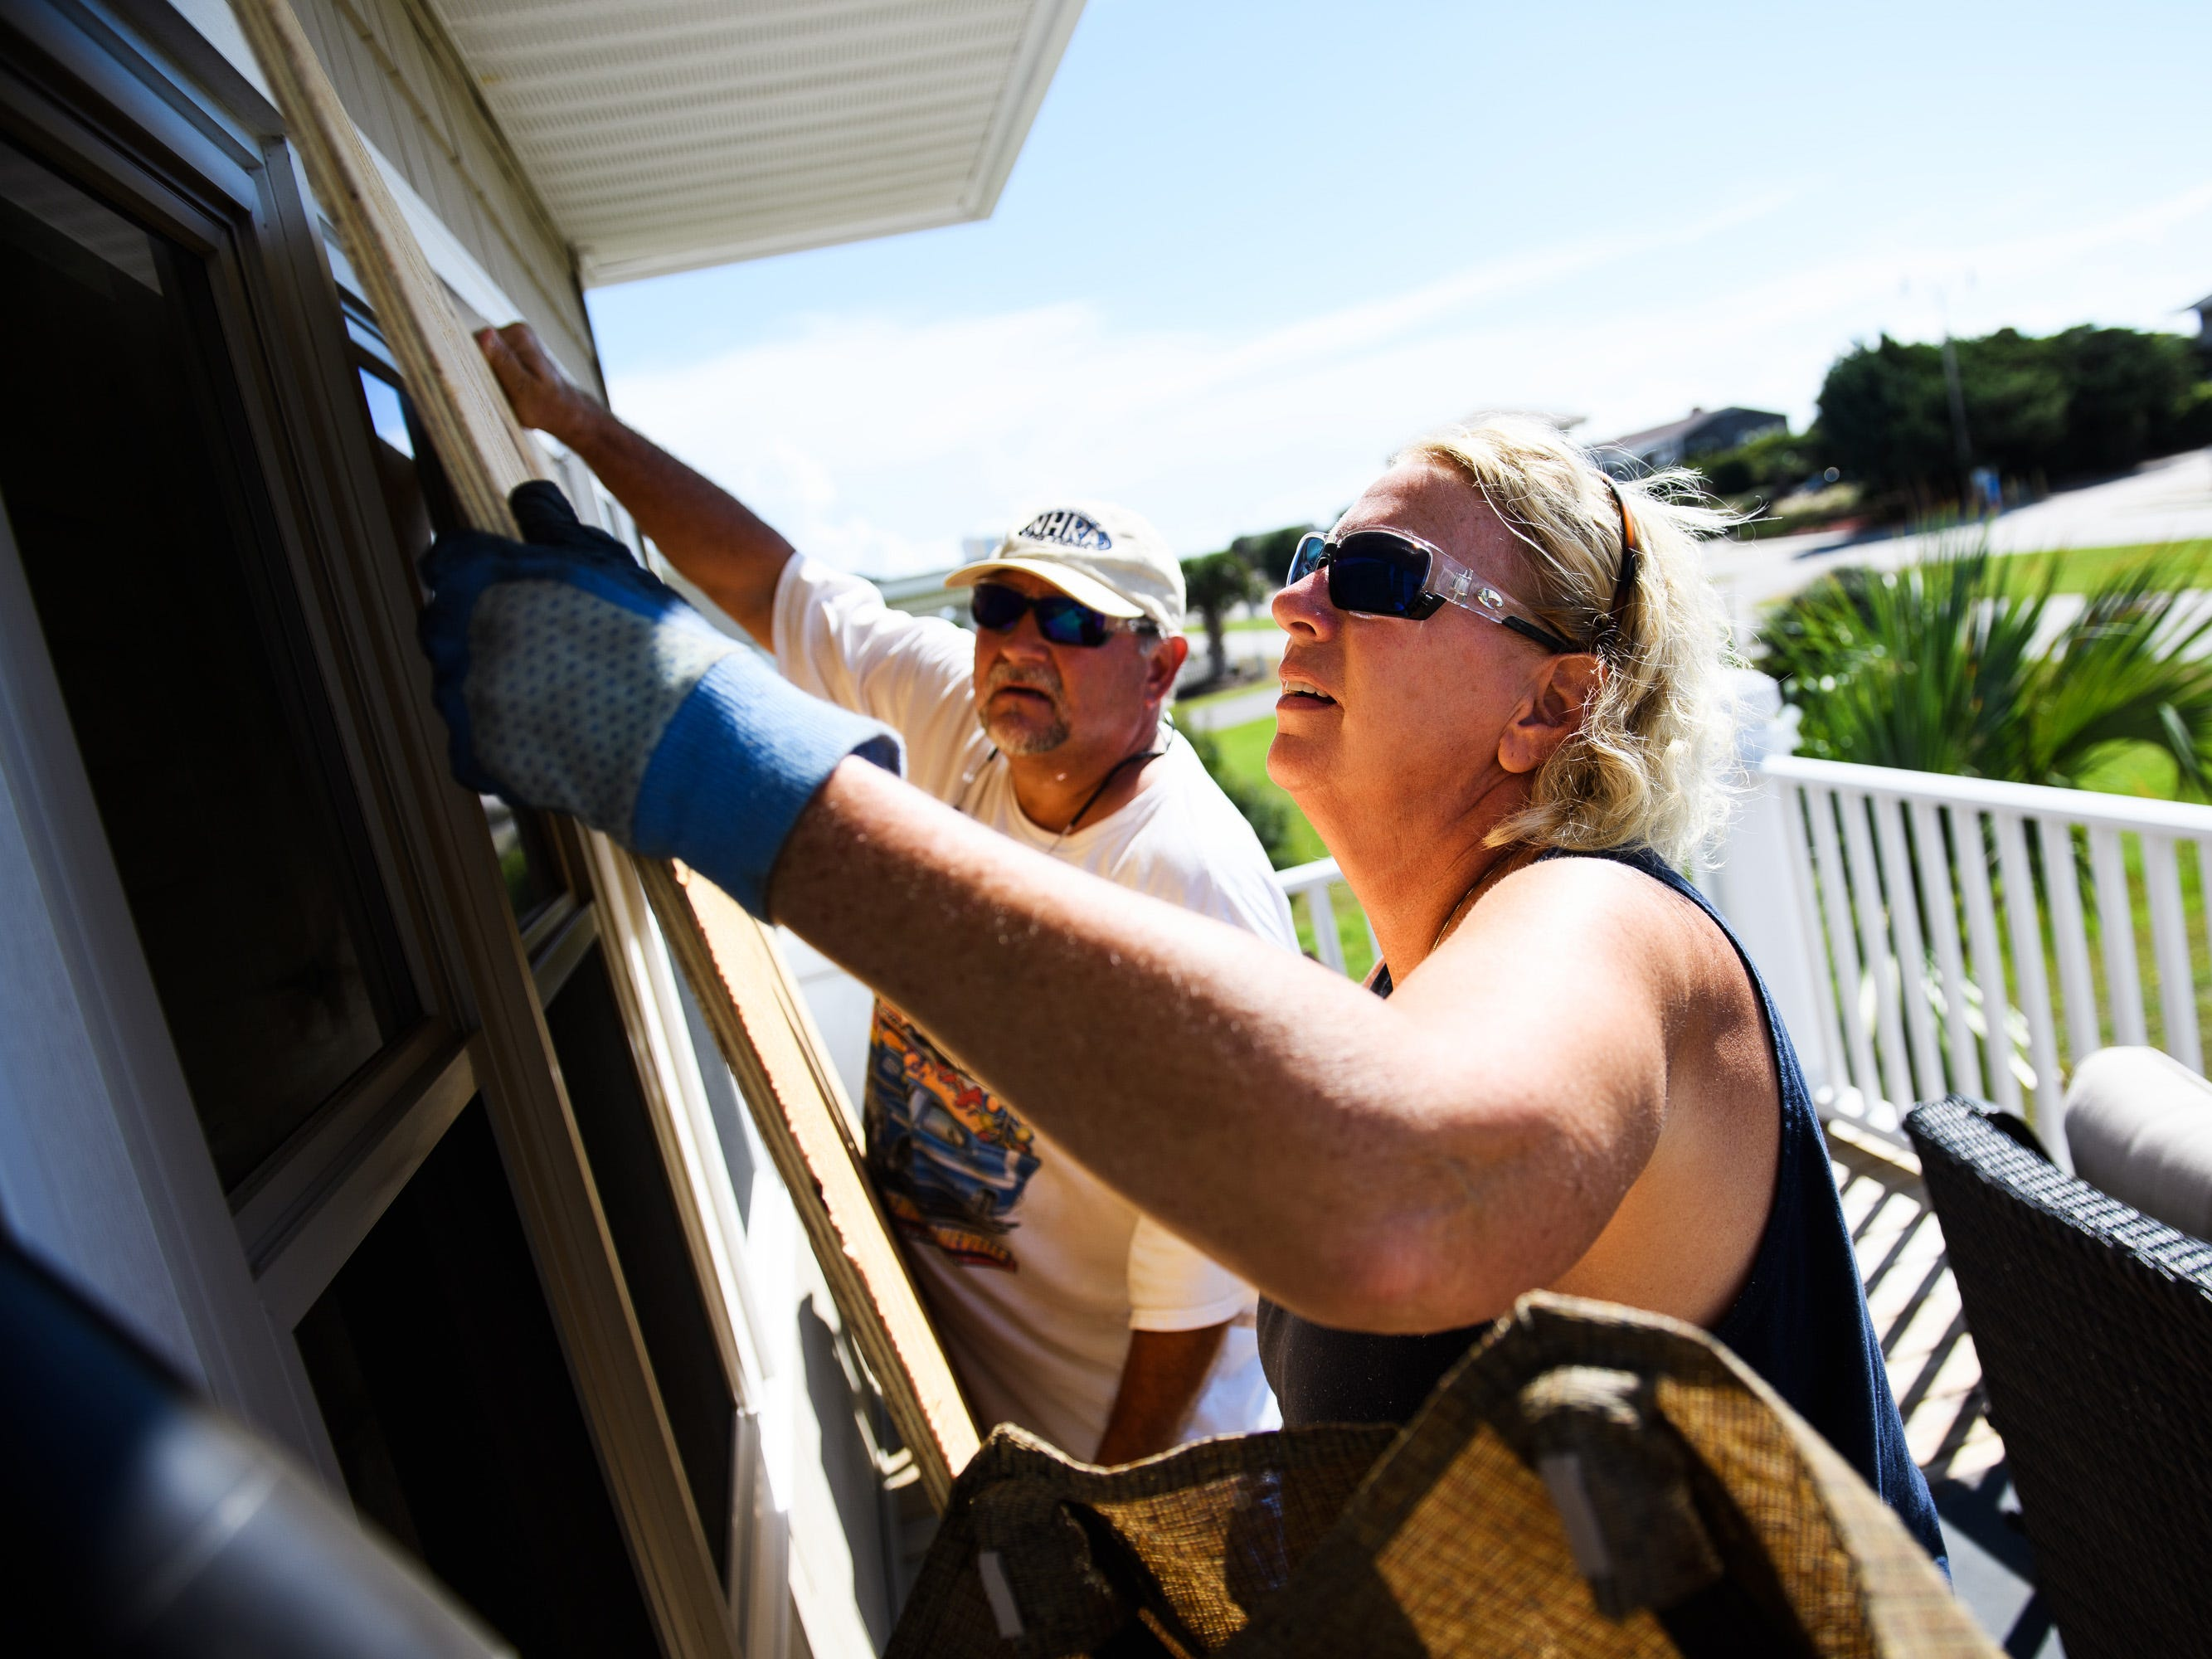 Sept. 11, 2018; North Myrtle Beach, SC, USA; Angie Travis and her husband Jeff place large piece of plywood over a window on their vacation home as they prepare for Hurricane Florence. Mandatory Credit: Josh Morgan/The Greenville News via USA TODAY NETWORK ORIG FILE ID:  20180911_ajw_usa_031.jpg